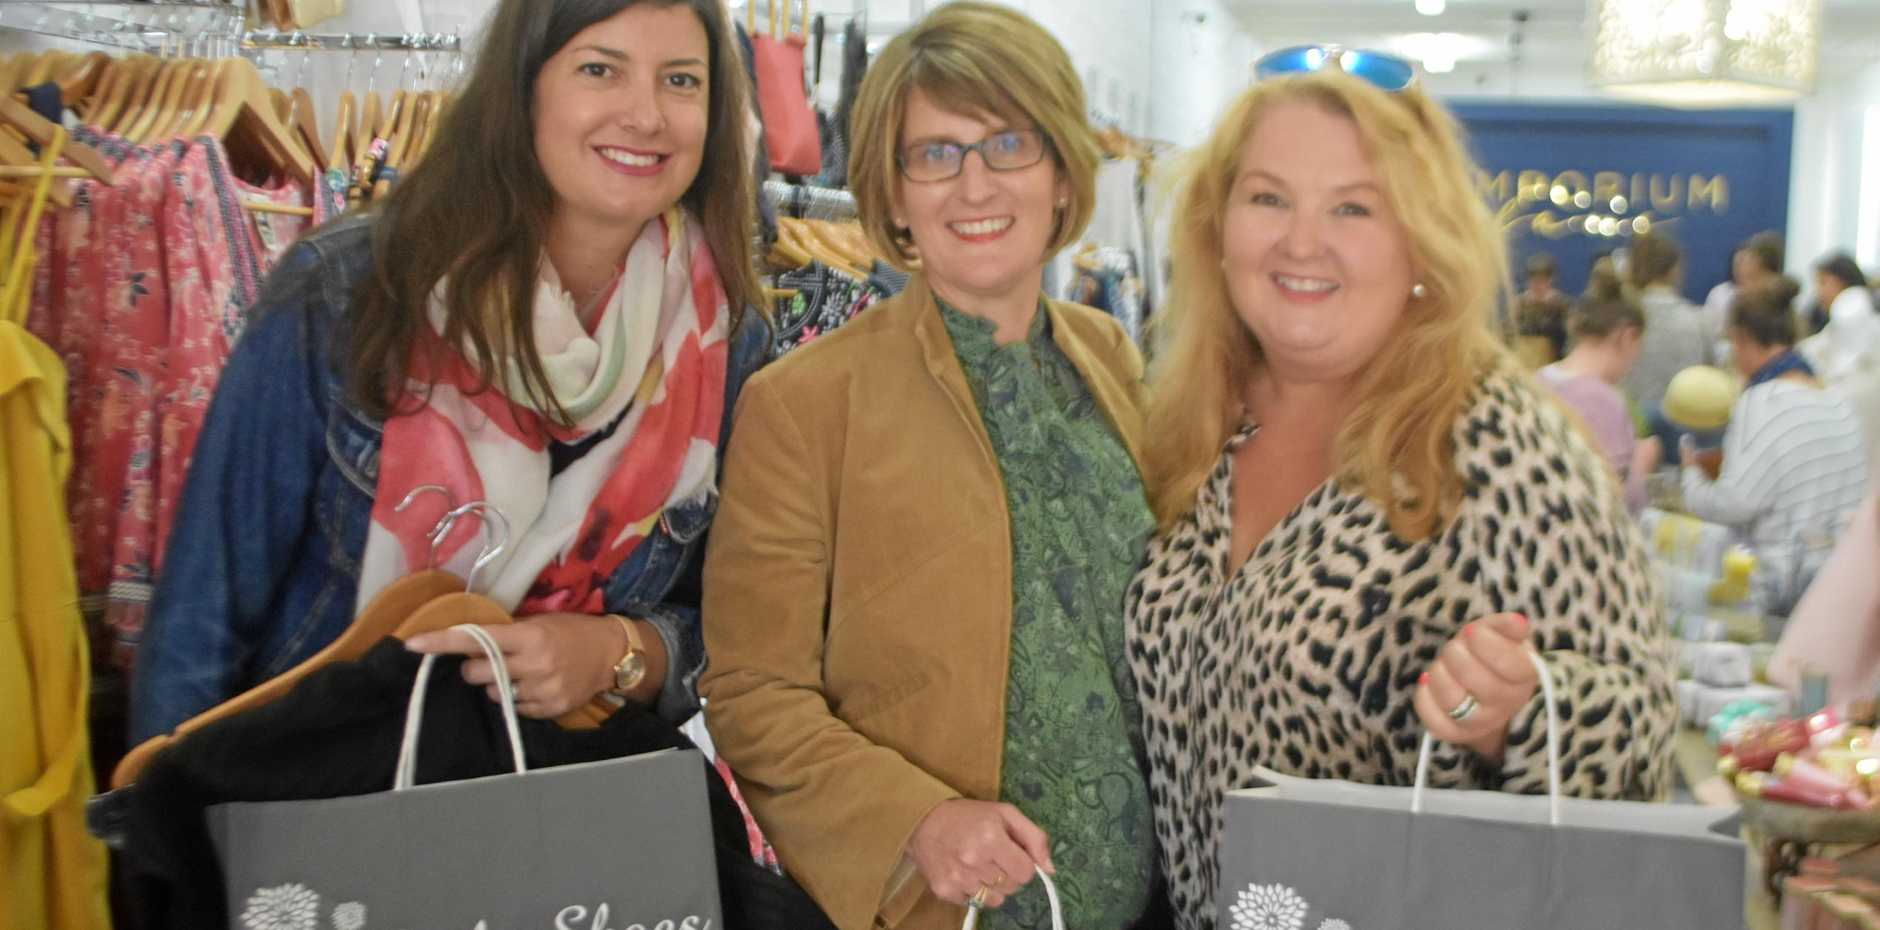 SHOPPING SPREE: Alison Detaille, Janelle Mangan and Kellie McDonald from Brisbane were hitting the shops on Palmerin St to help our farmers.